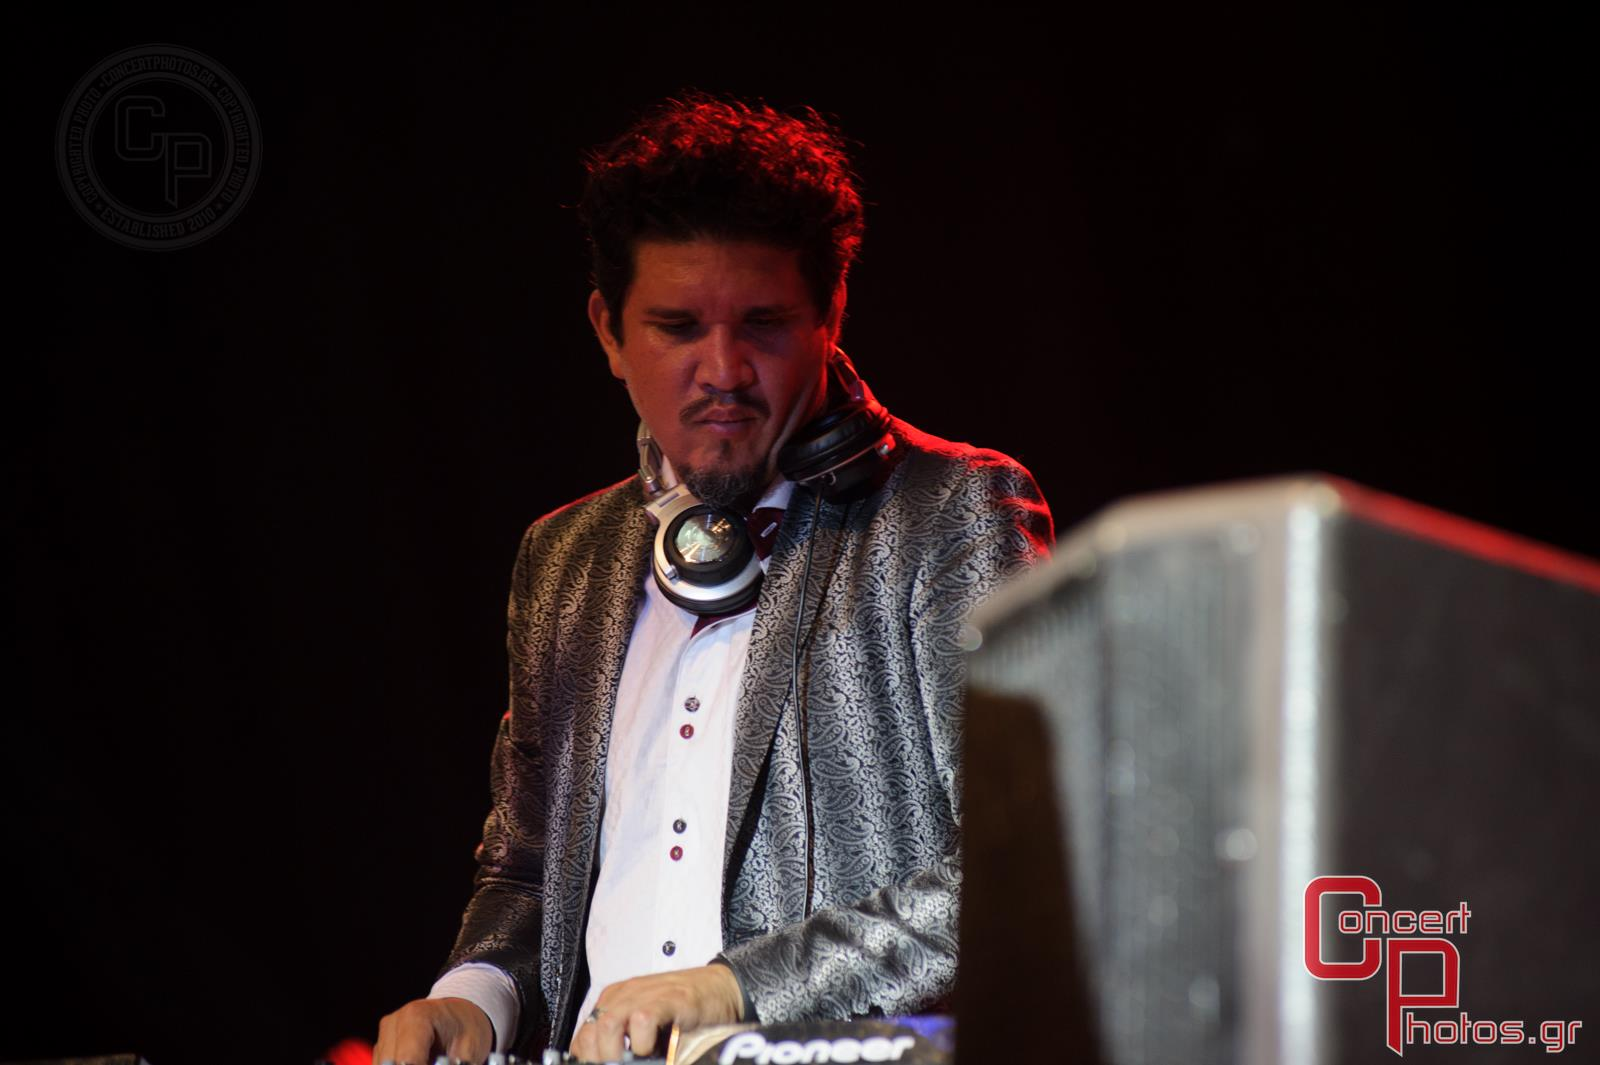 Thievery Corporation Imam Baildi Boogie Belgique Penny And The Swingin' Cats-Thievery Corporation Imam Baildi Boogie Belgique Penny And The Swingin' Cats photographer:  - concertphotos_20140617_23_29_10